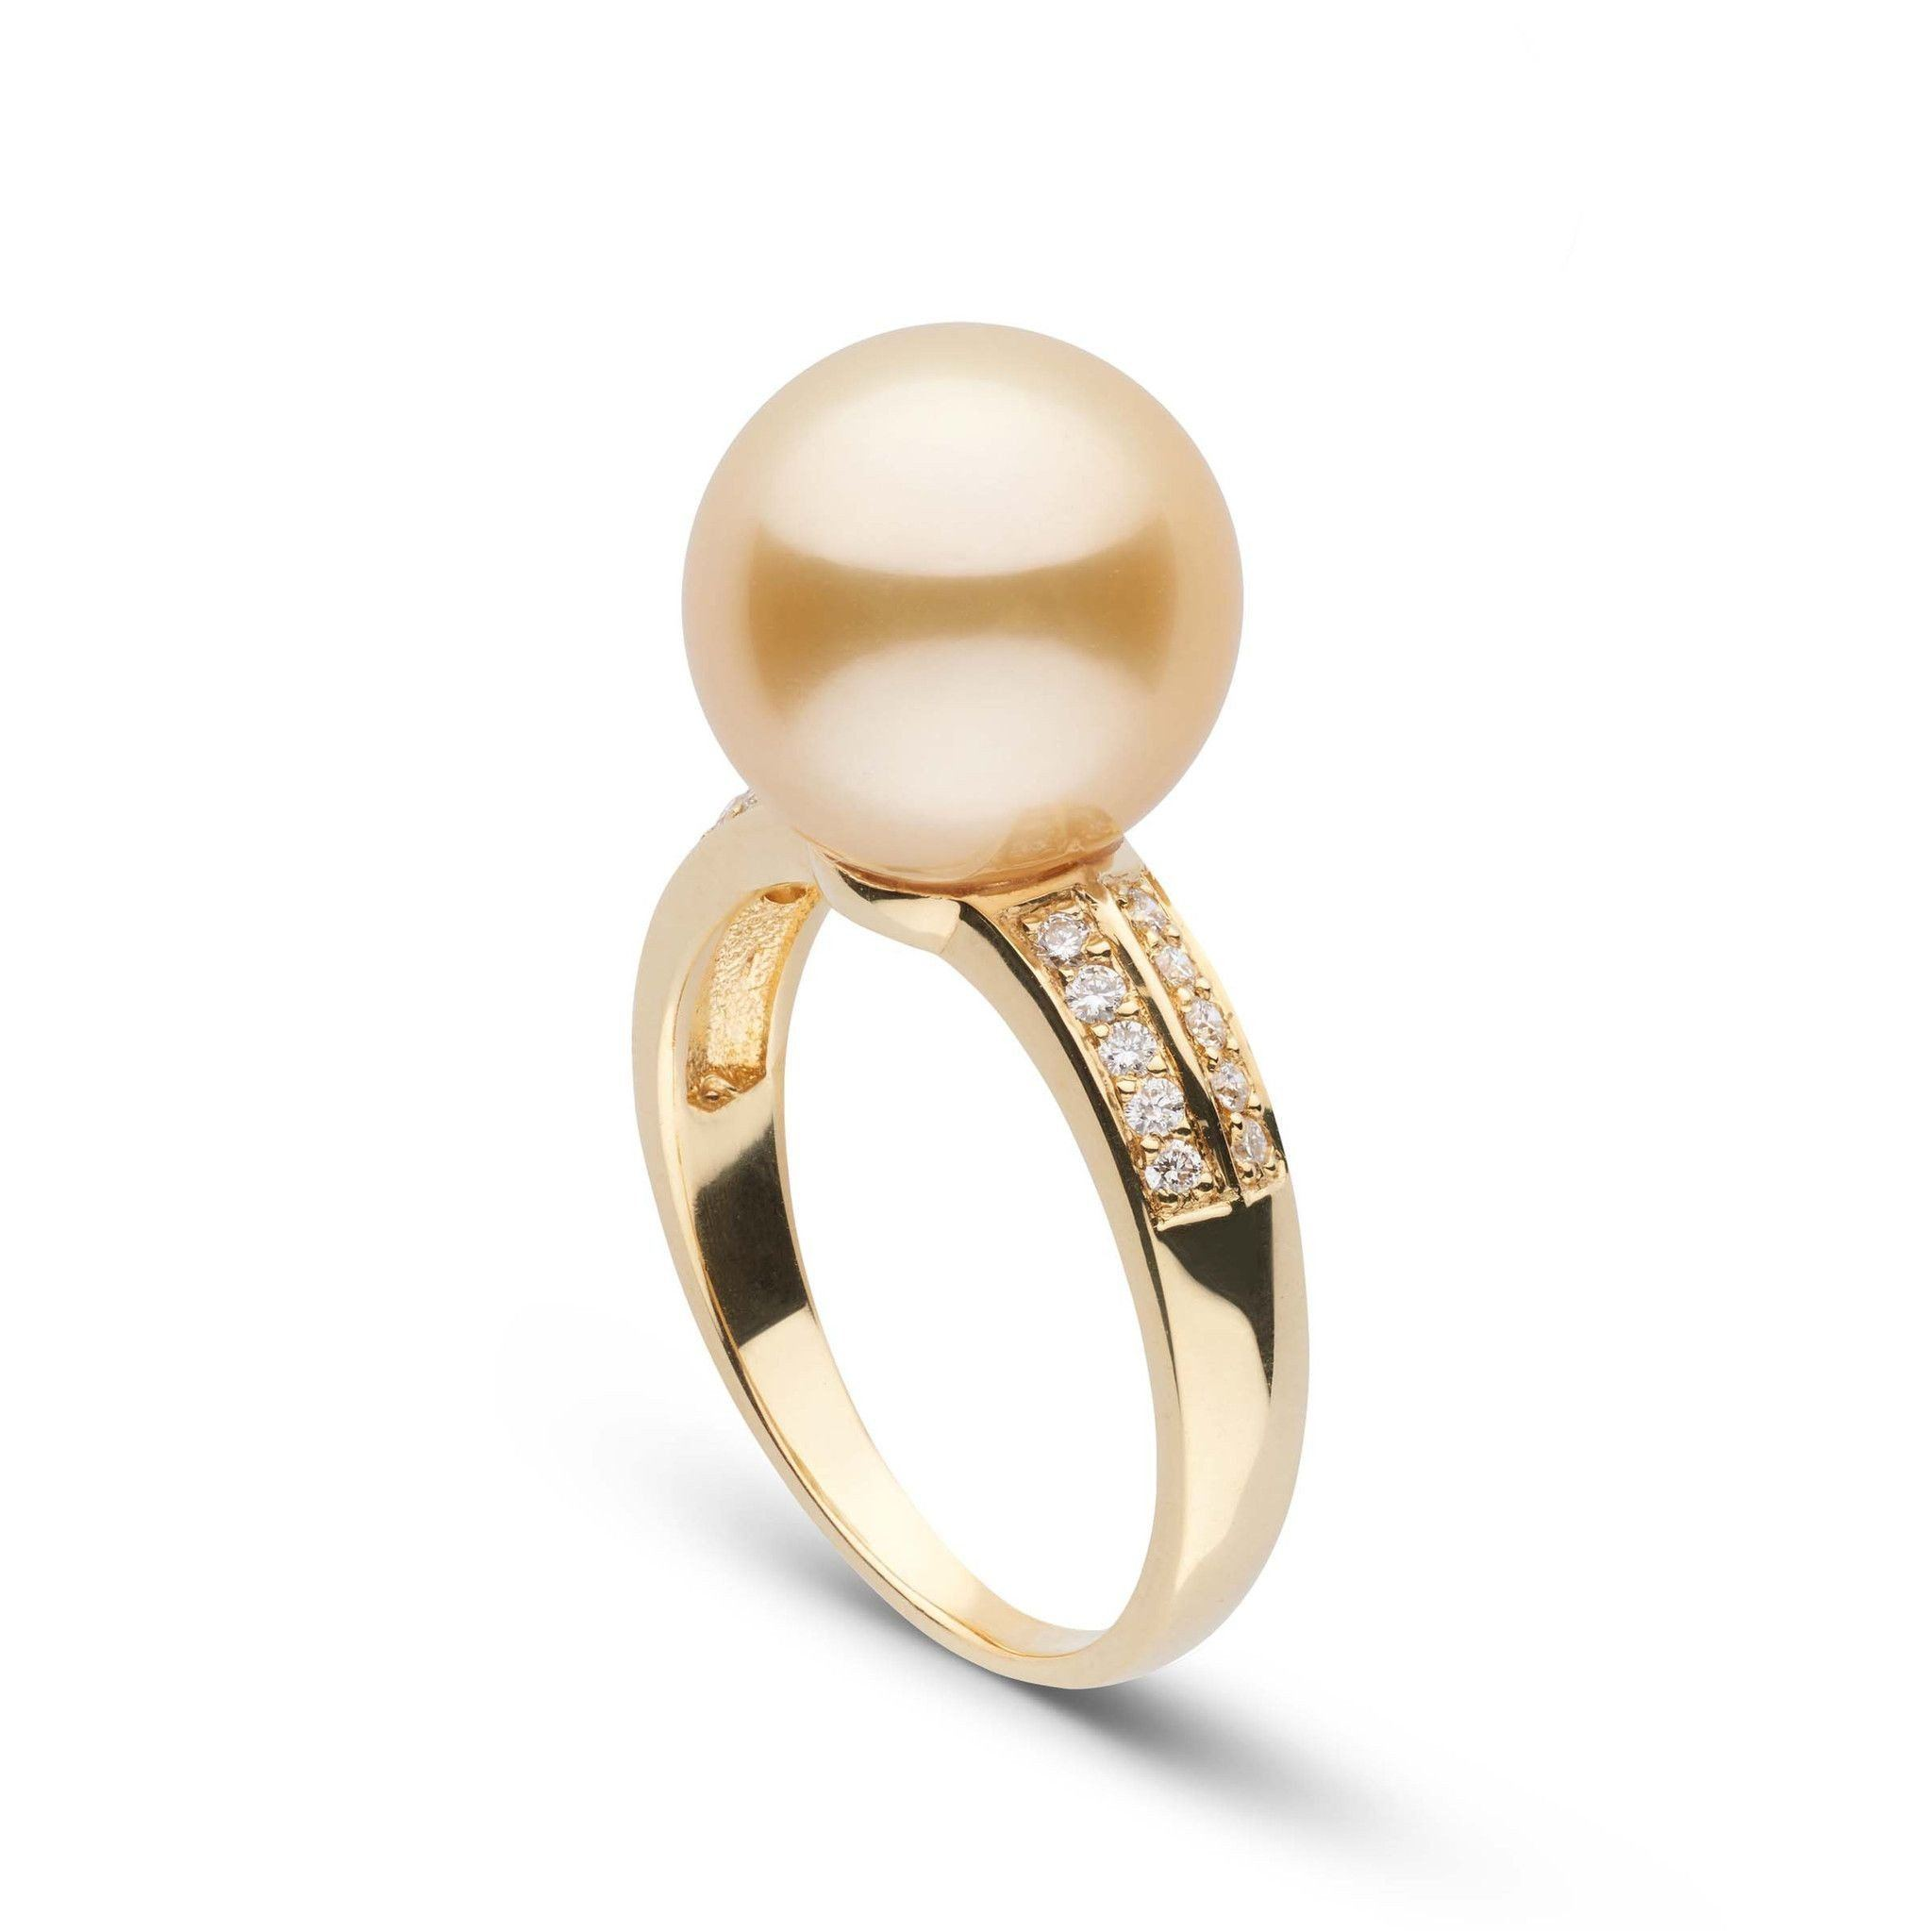 Forever Collection Golden 11.0-12.0 mm South Sea Pearl and Diamond Ring